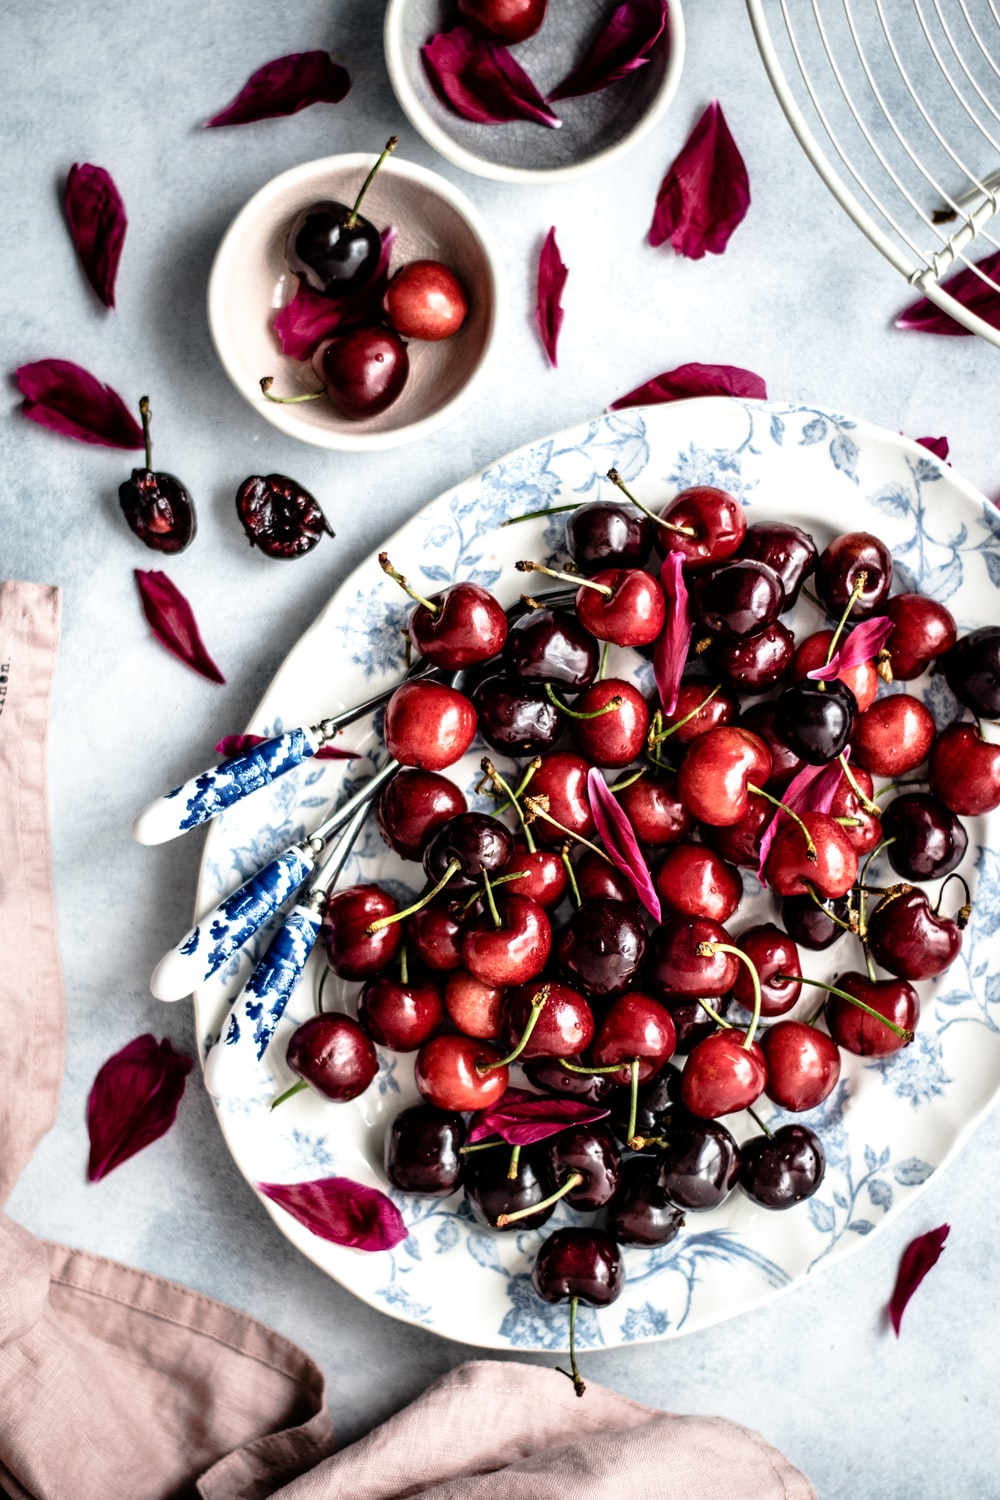 red cherry fruits on oval white and blue floral ceramic plate